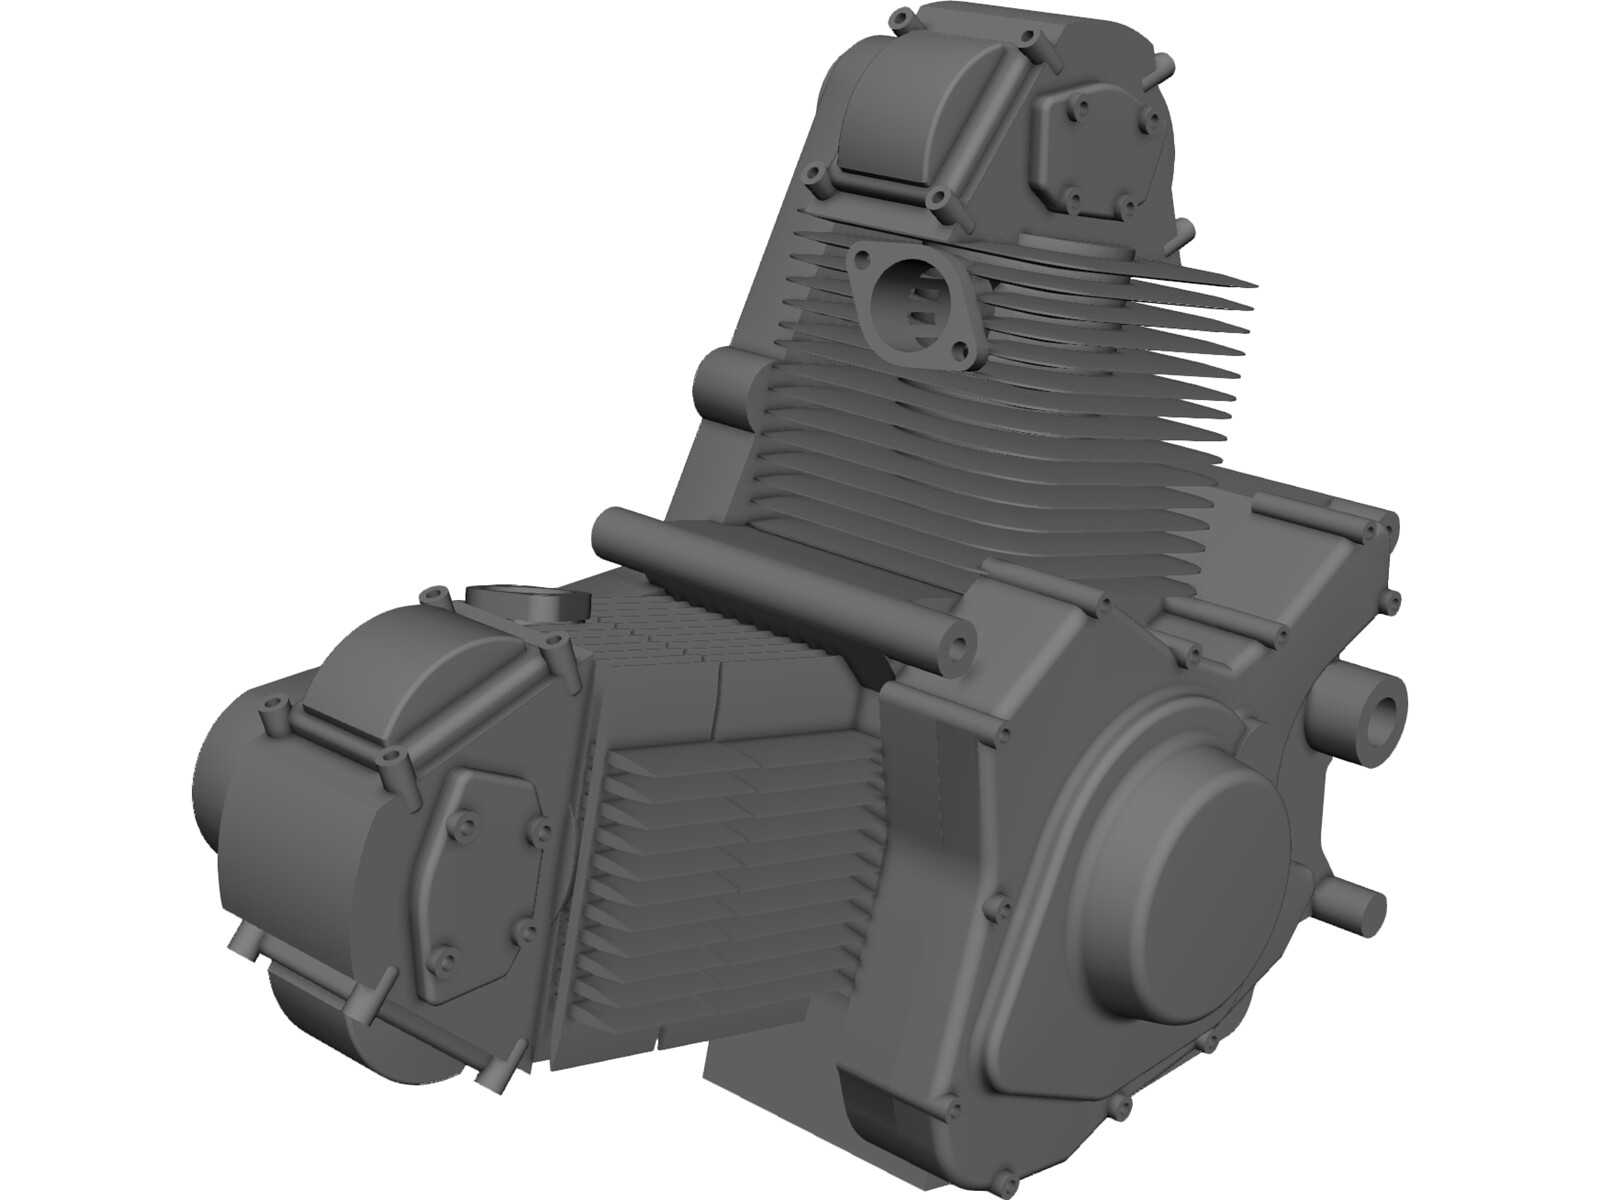 Engine Ducati 900ss Motorcycle 3D CAD Model